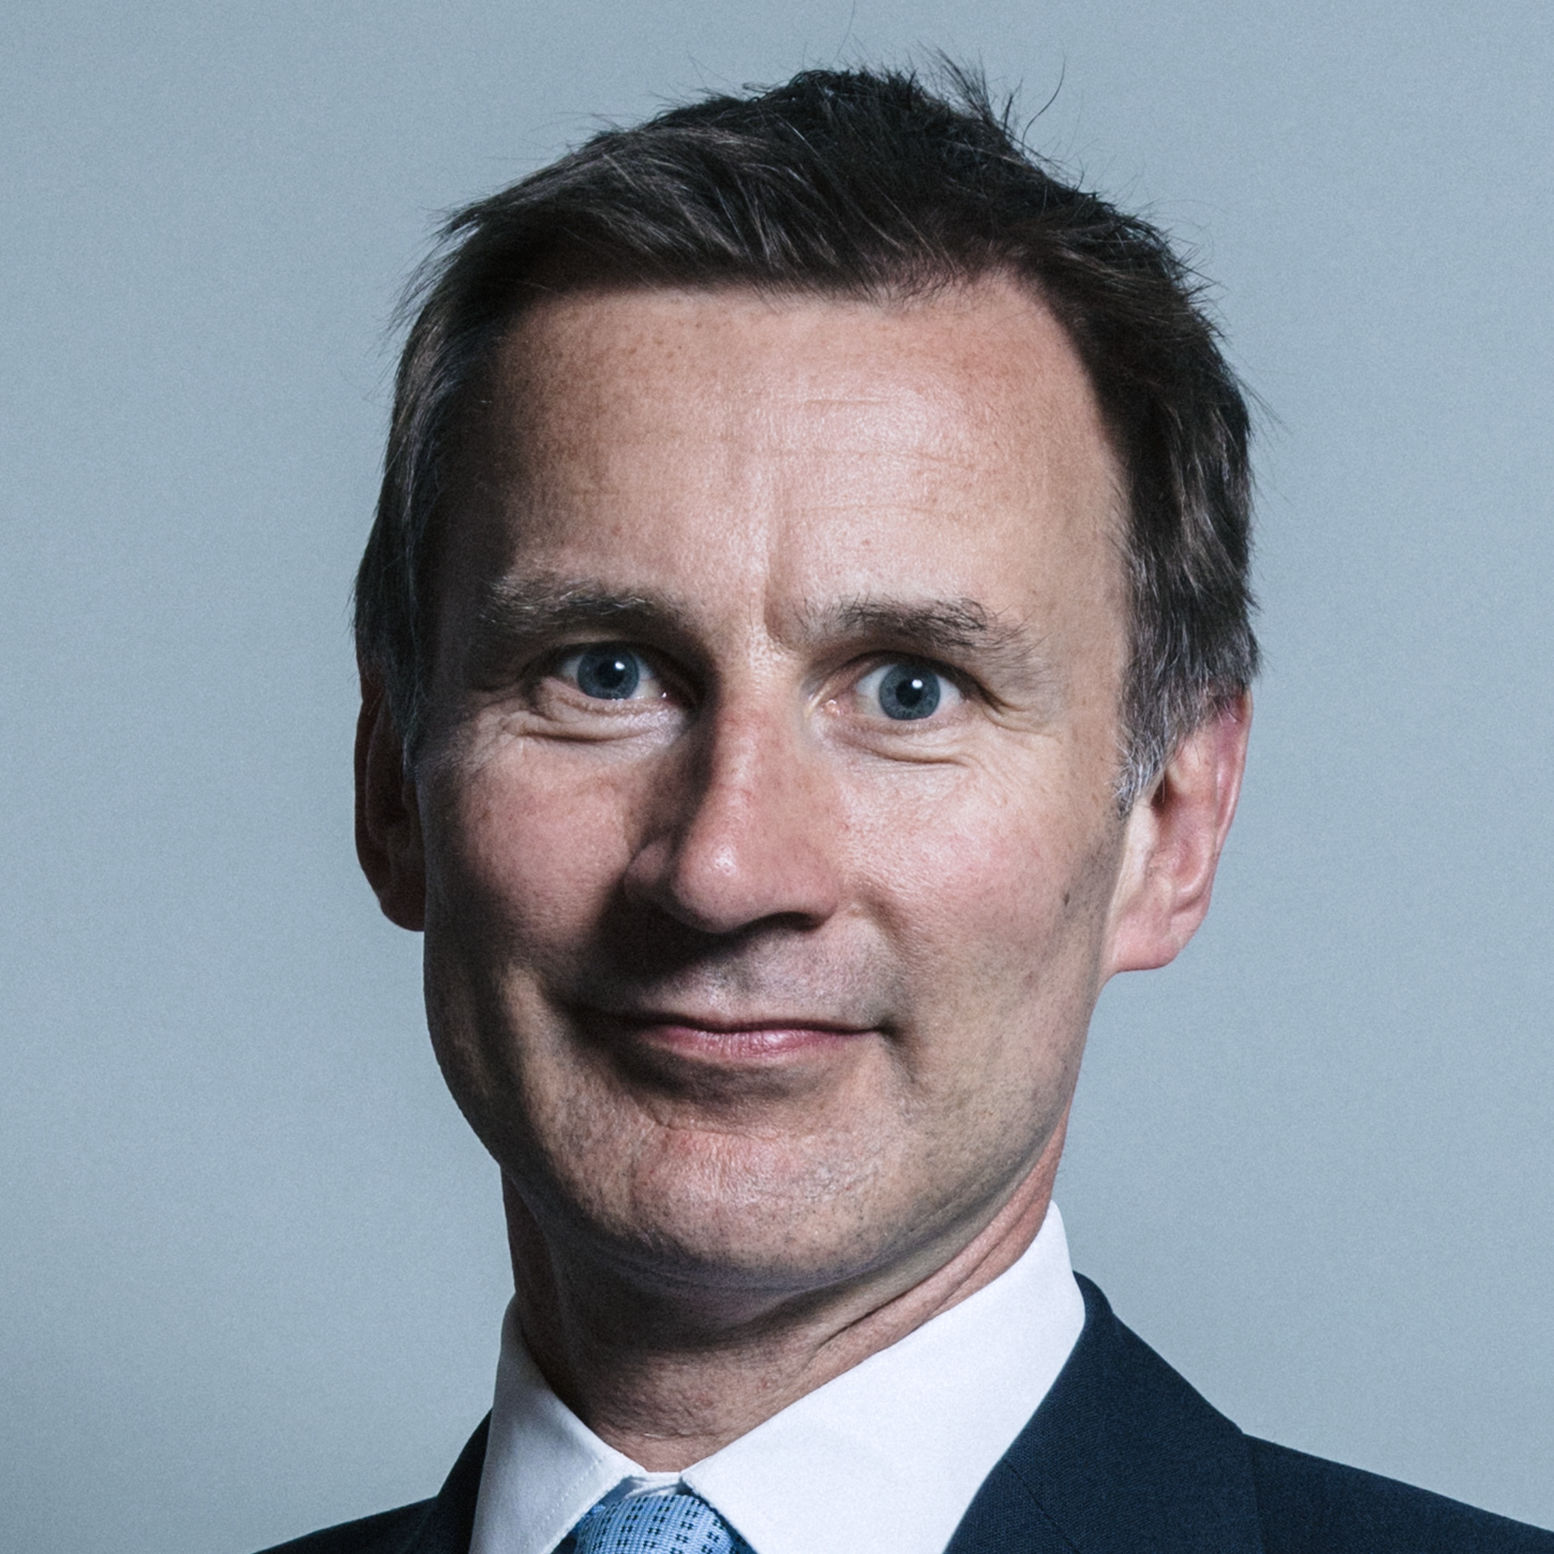 Jeremy Hunt Portrait